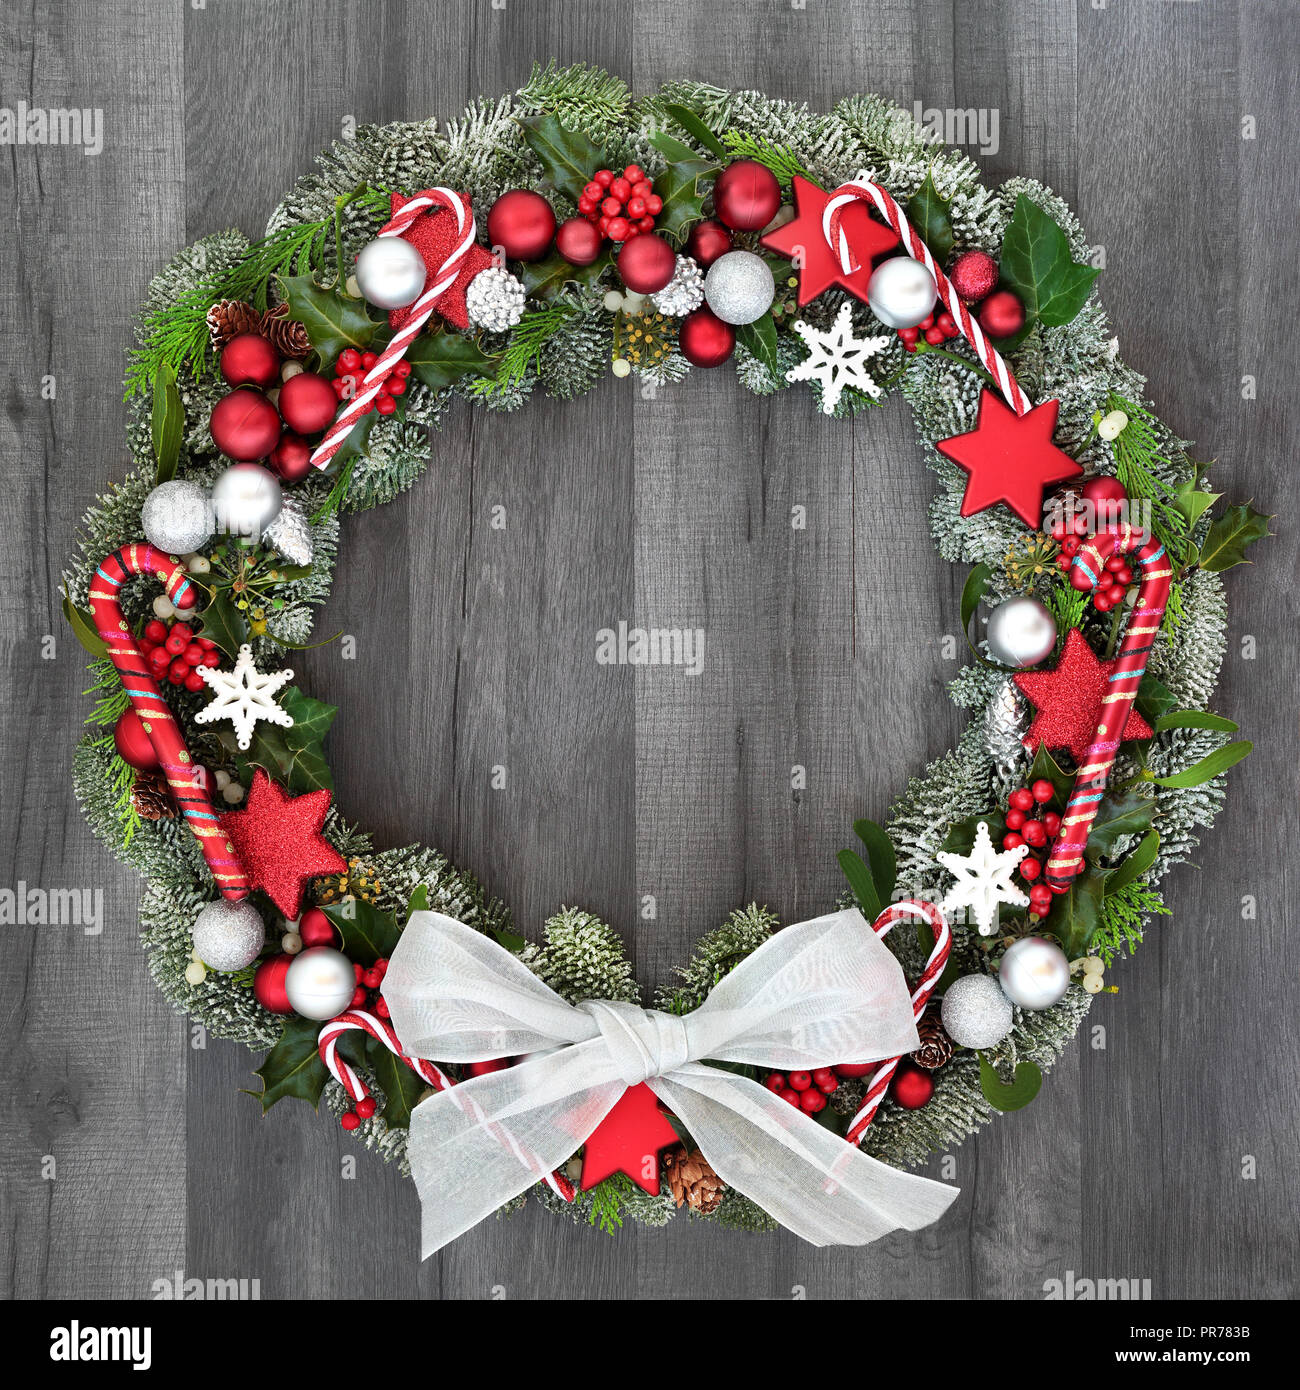 Christmas And Winter Wreath With Candy Canes Bow Bauble Decorations Holly Mistletoe Ivy And Spruce Fir On Rustic Grey Wood Background Stock Photo Alamy